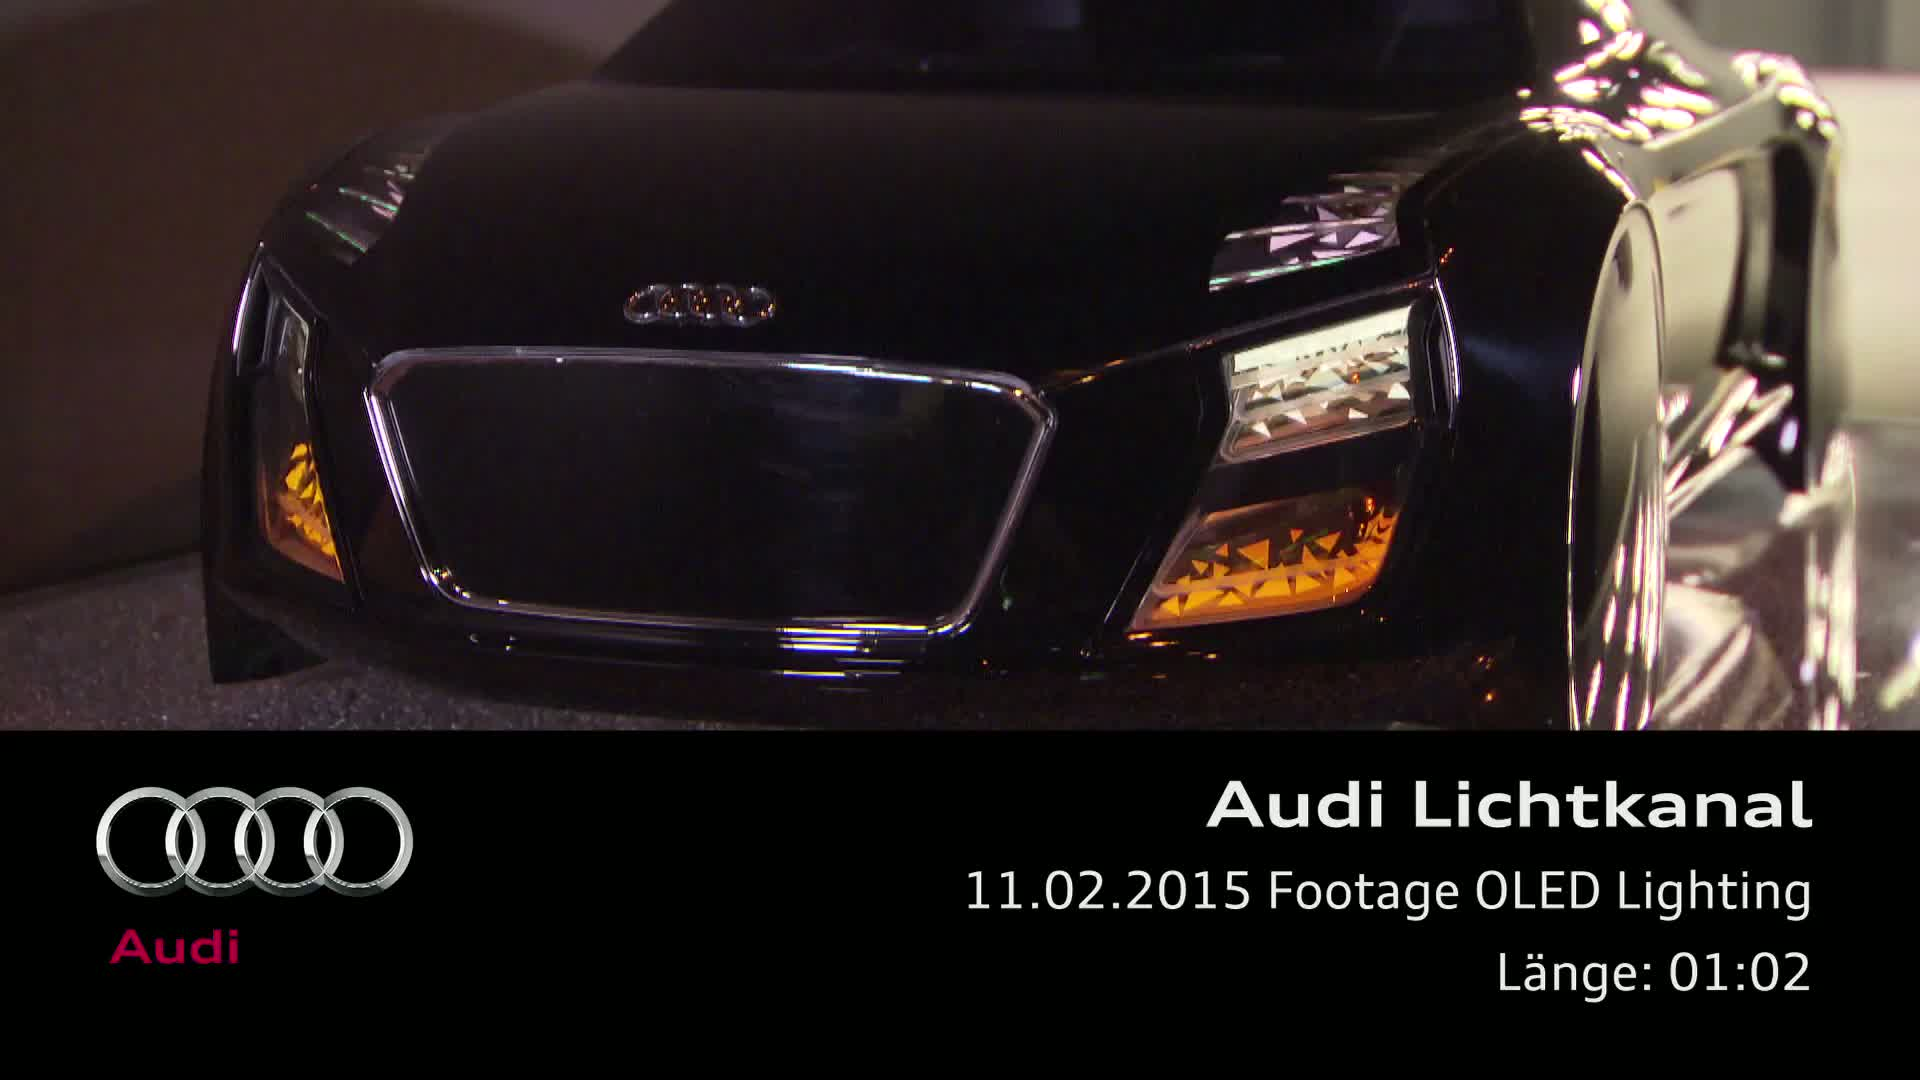 Audi future lab - Footage OLED Lighting